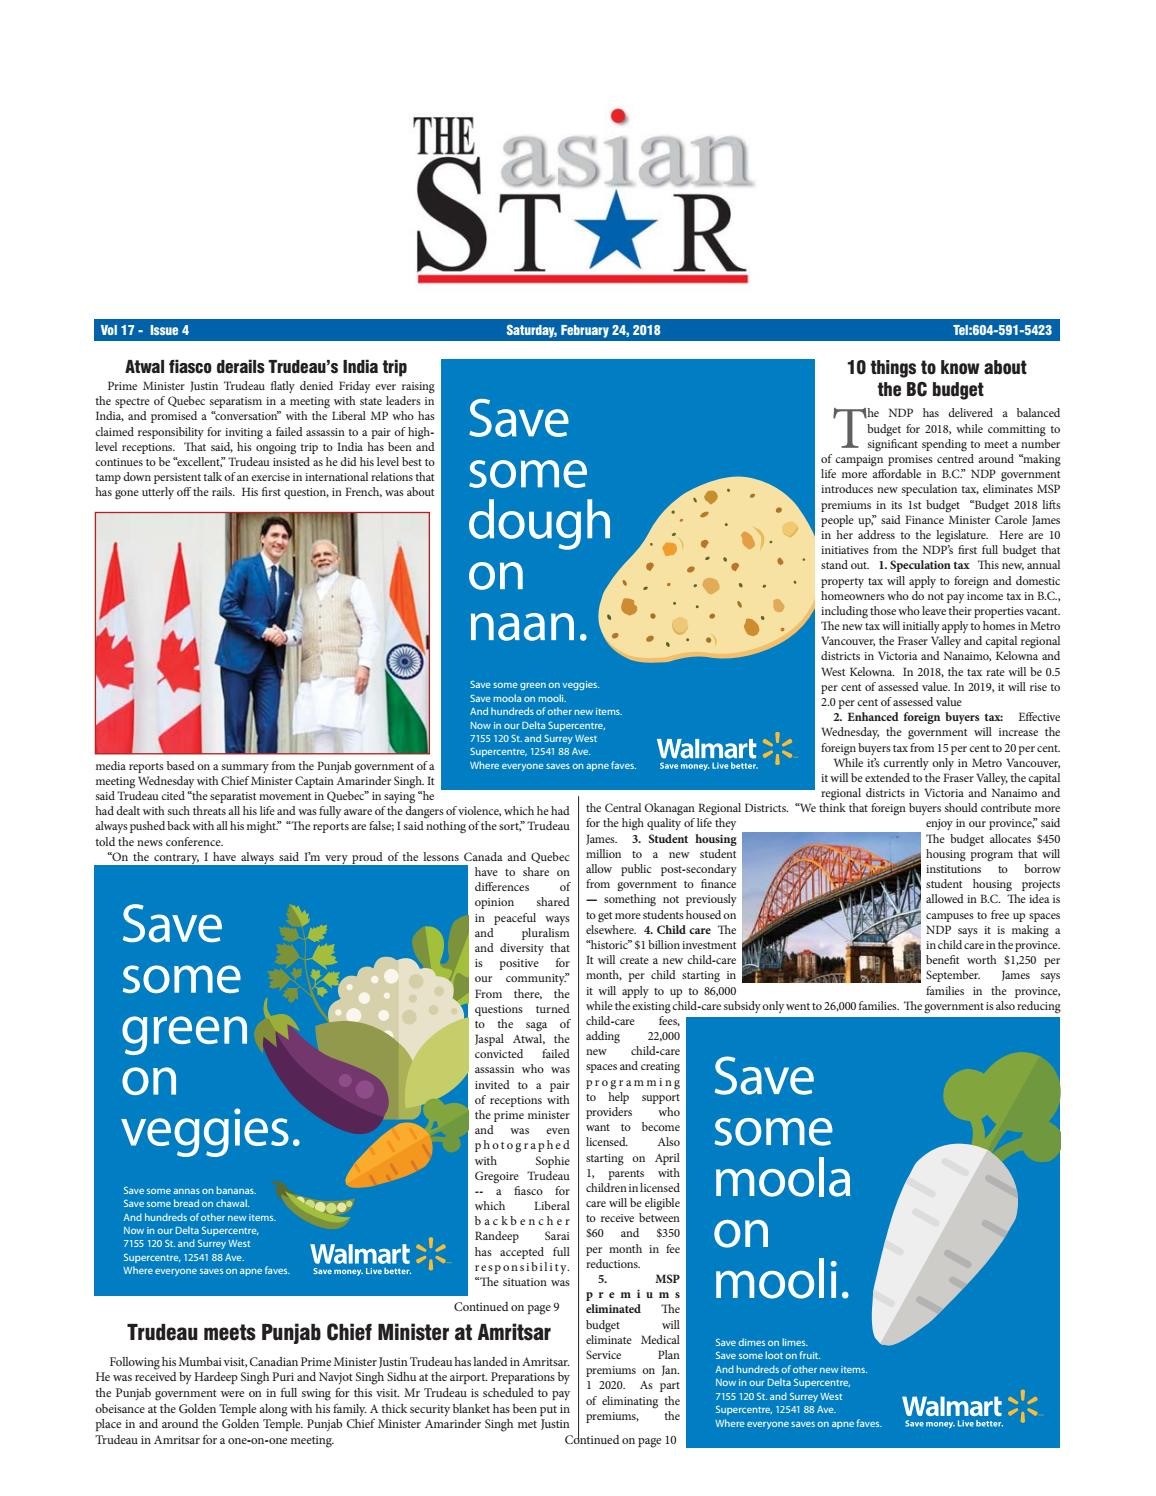 The Asian Star February 24 2018 by The Asian Star Newspaper